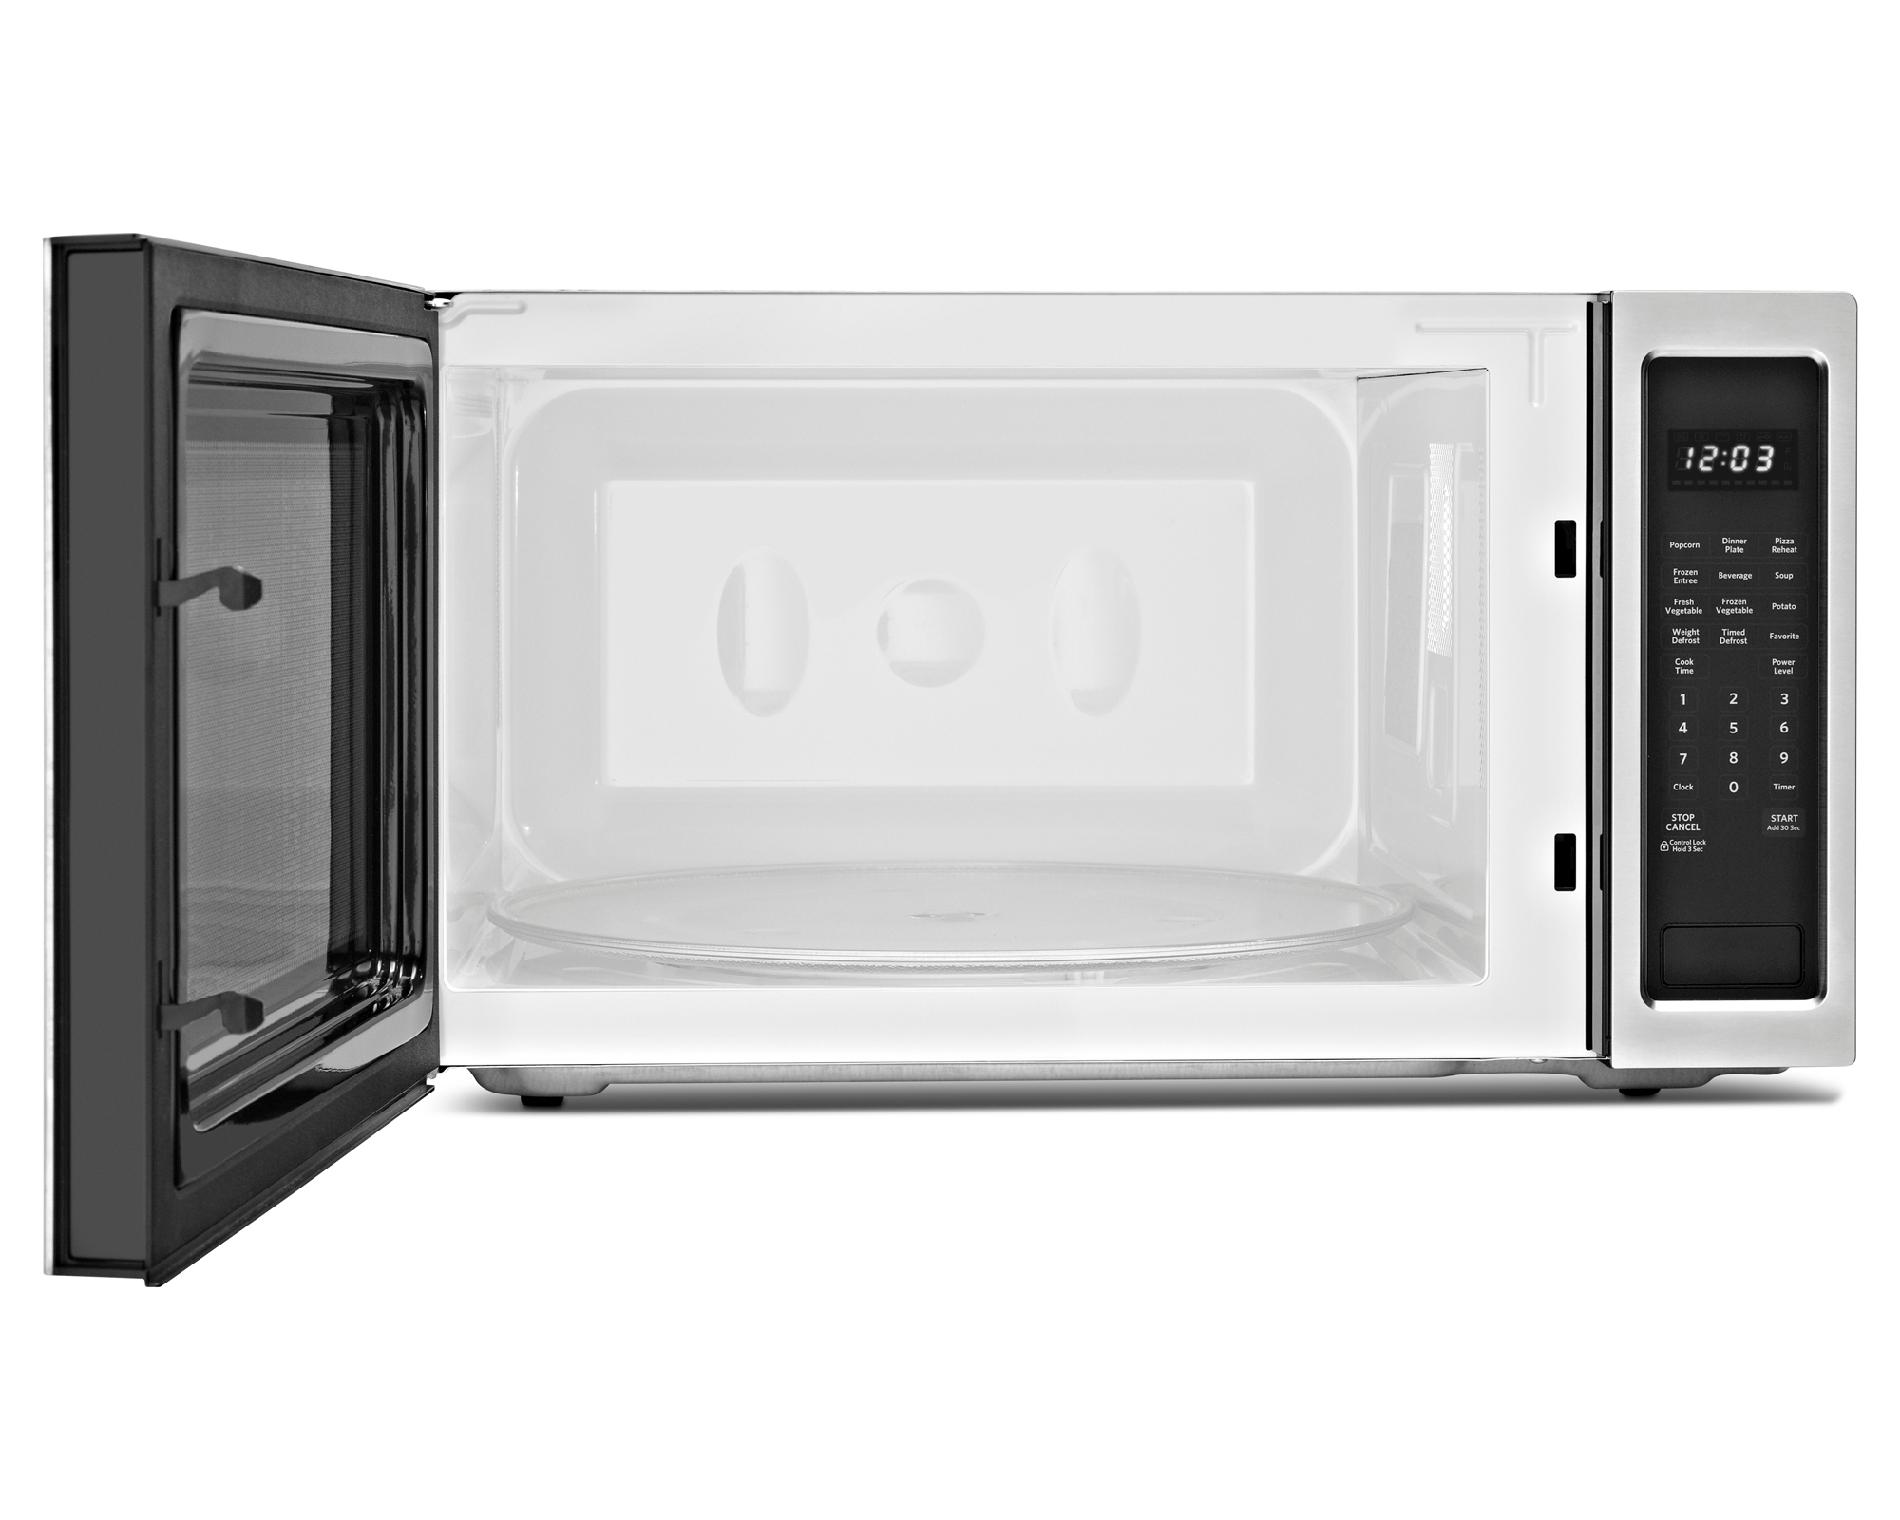 KitchenAid 2.2 cu. ft. Countertop Microwave w/ Sensor Cooking - Stainless Steel